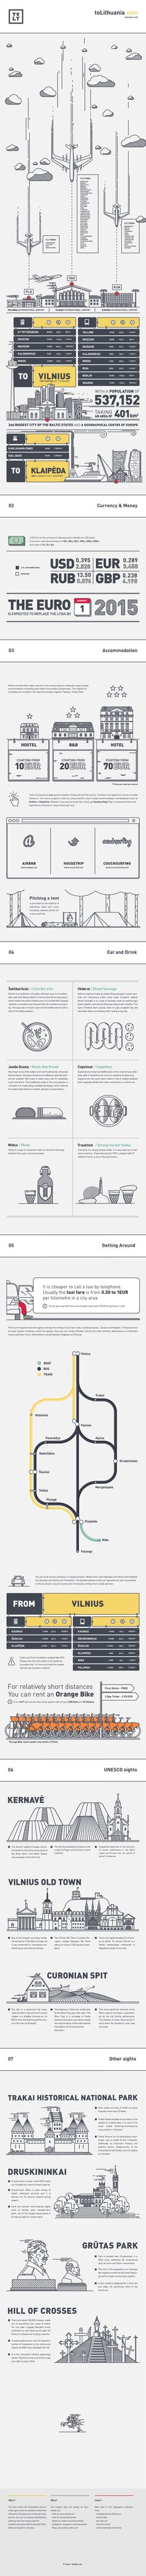 Go To Lithuania infographic — Designspiration